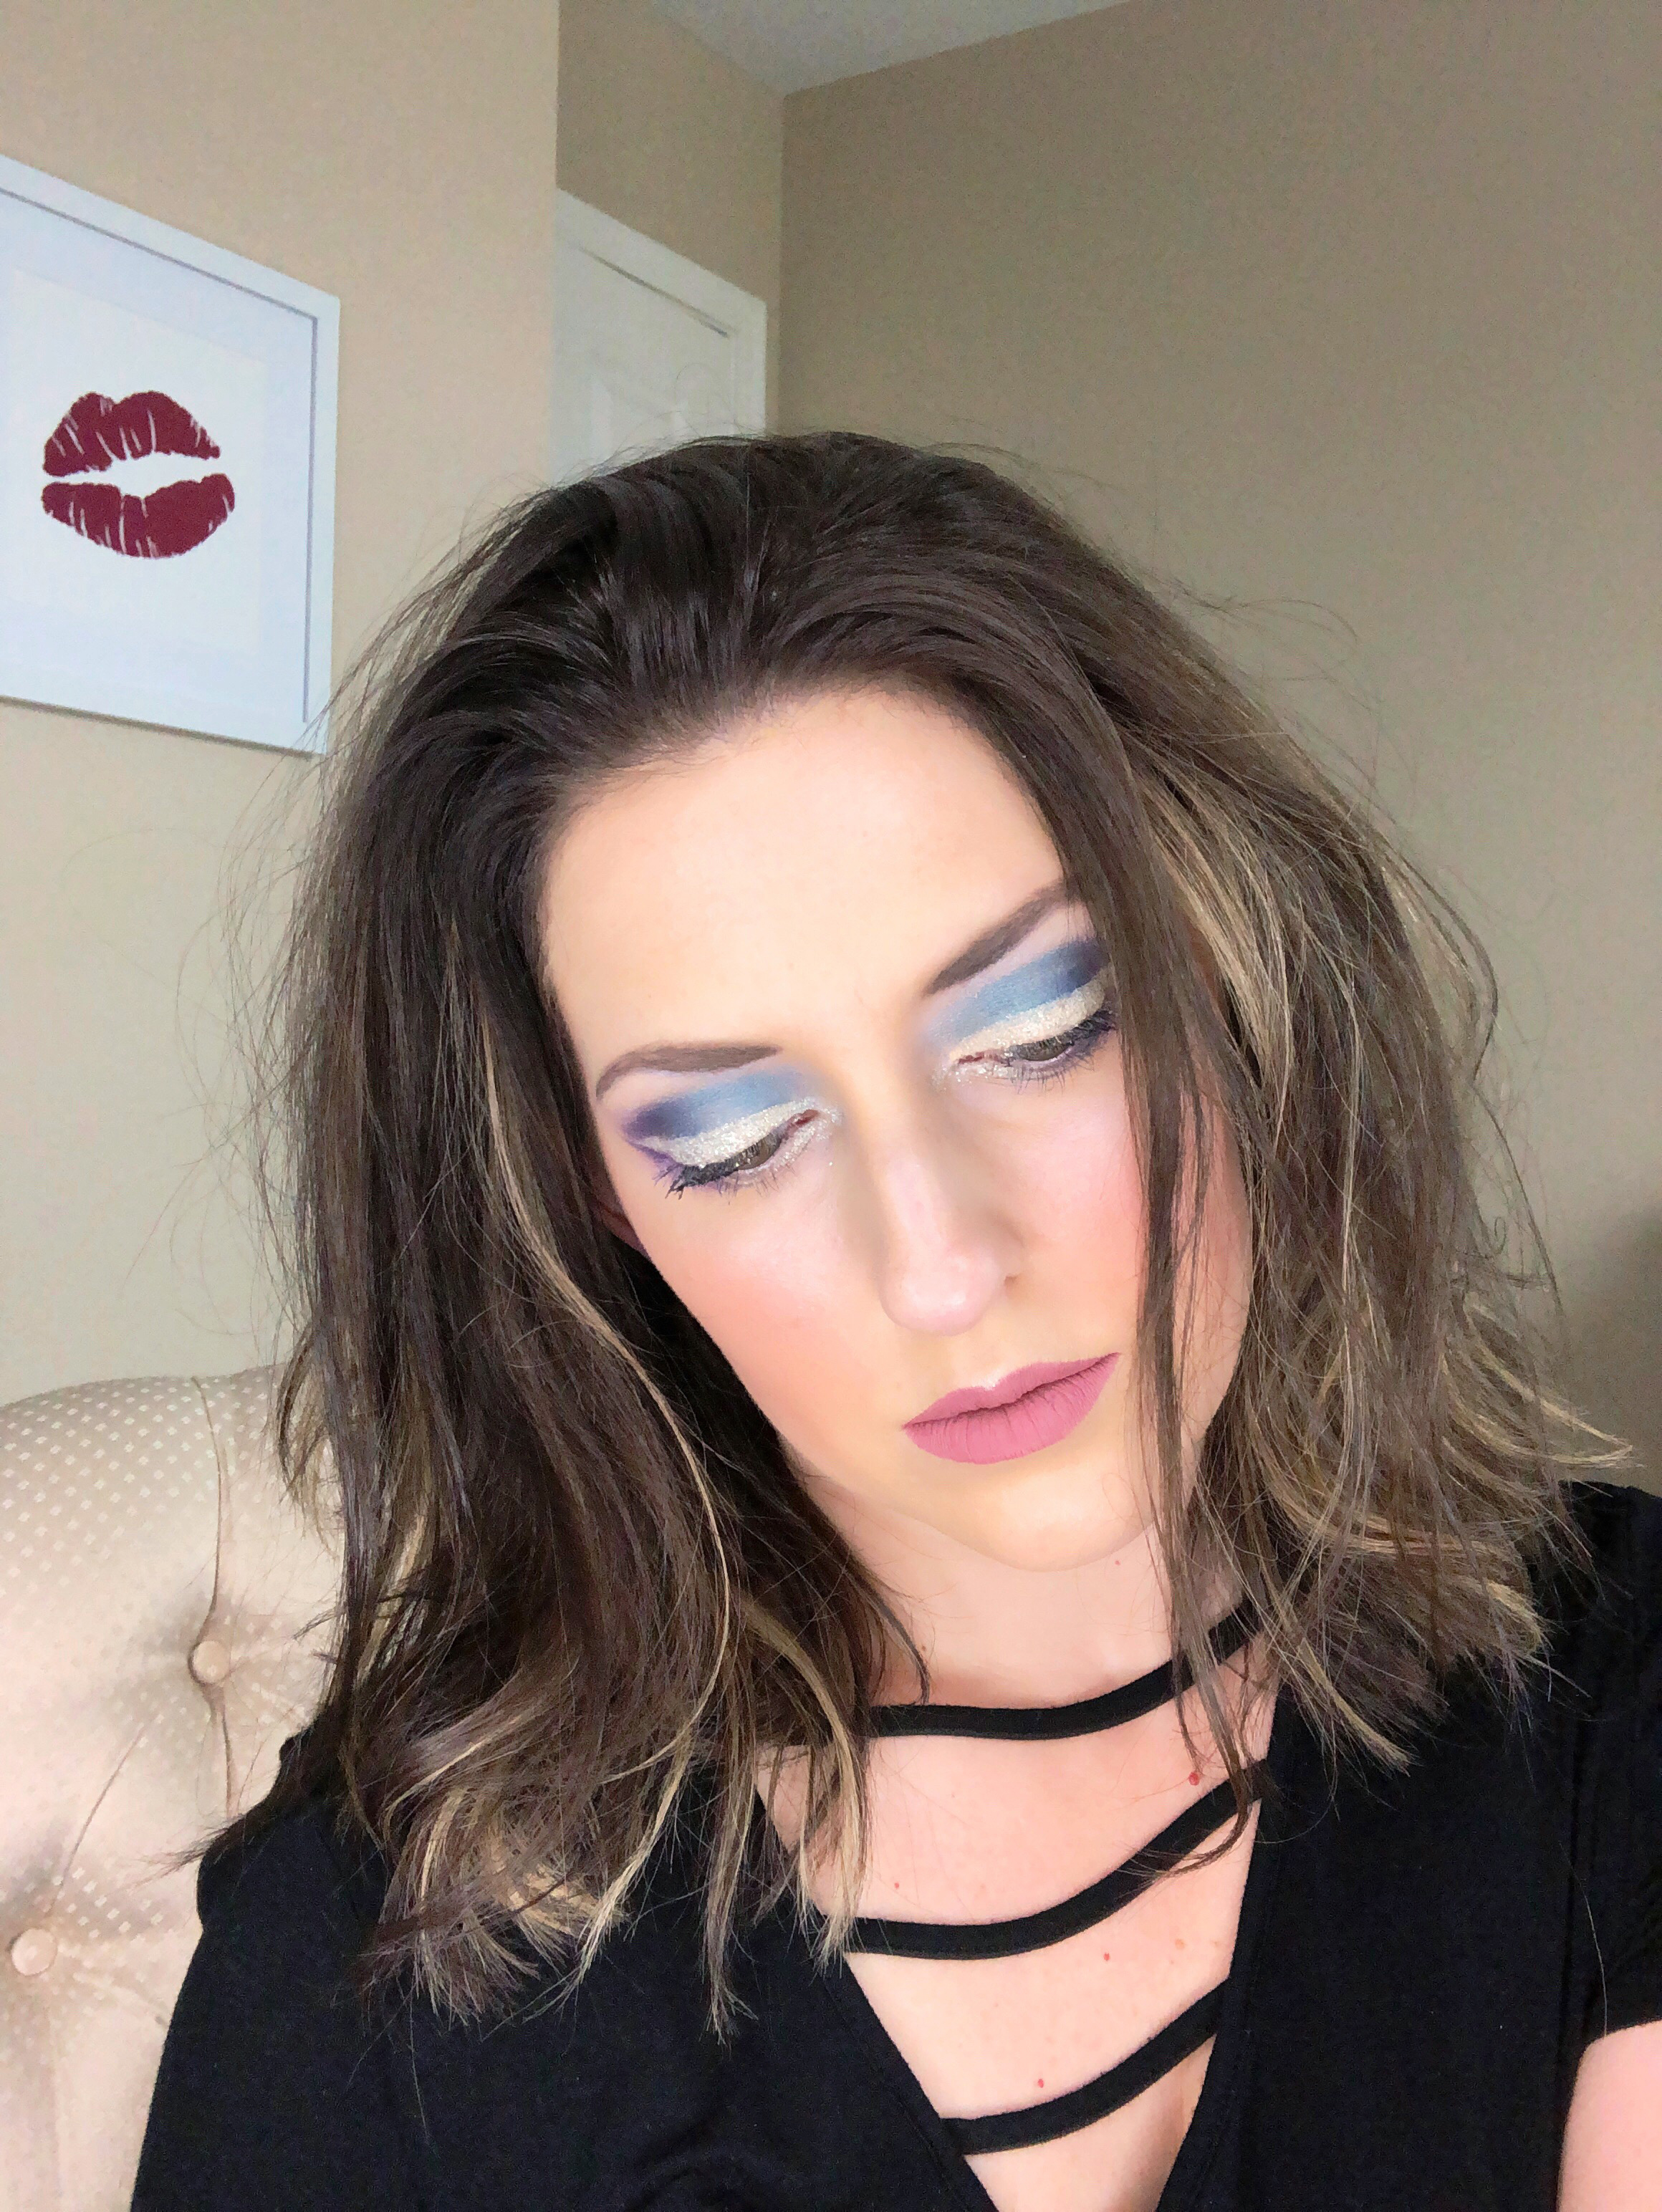 Festival inspired glam makeup featuring products from the beauty crop